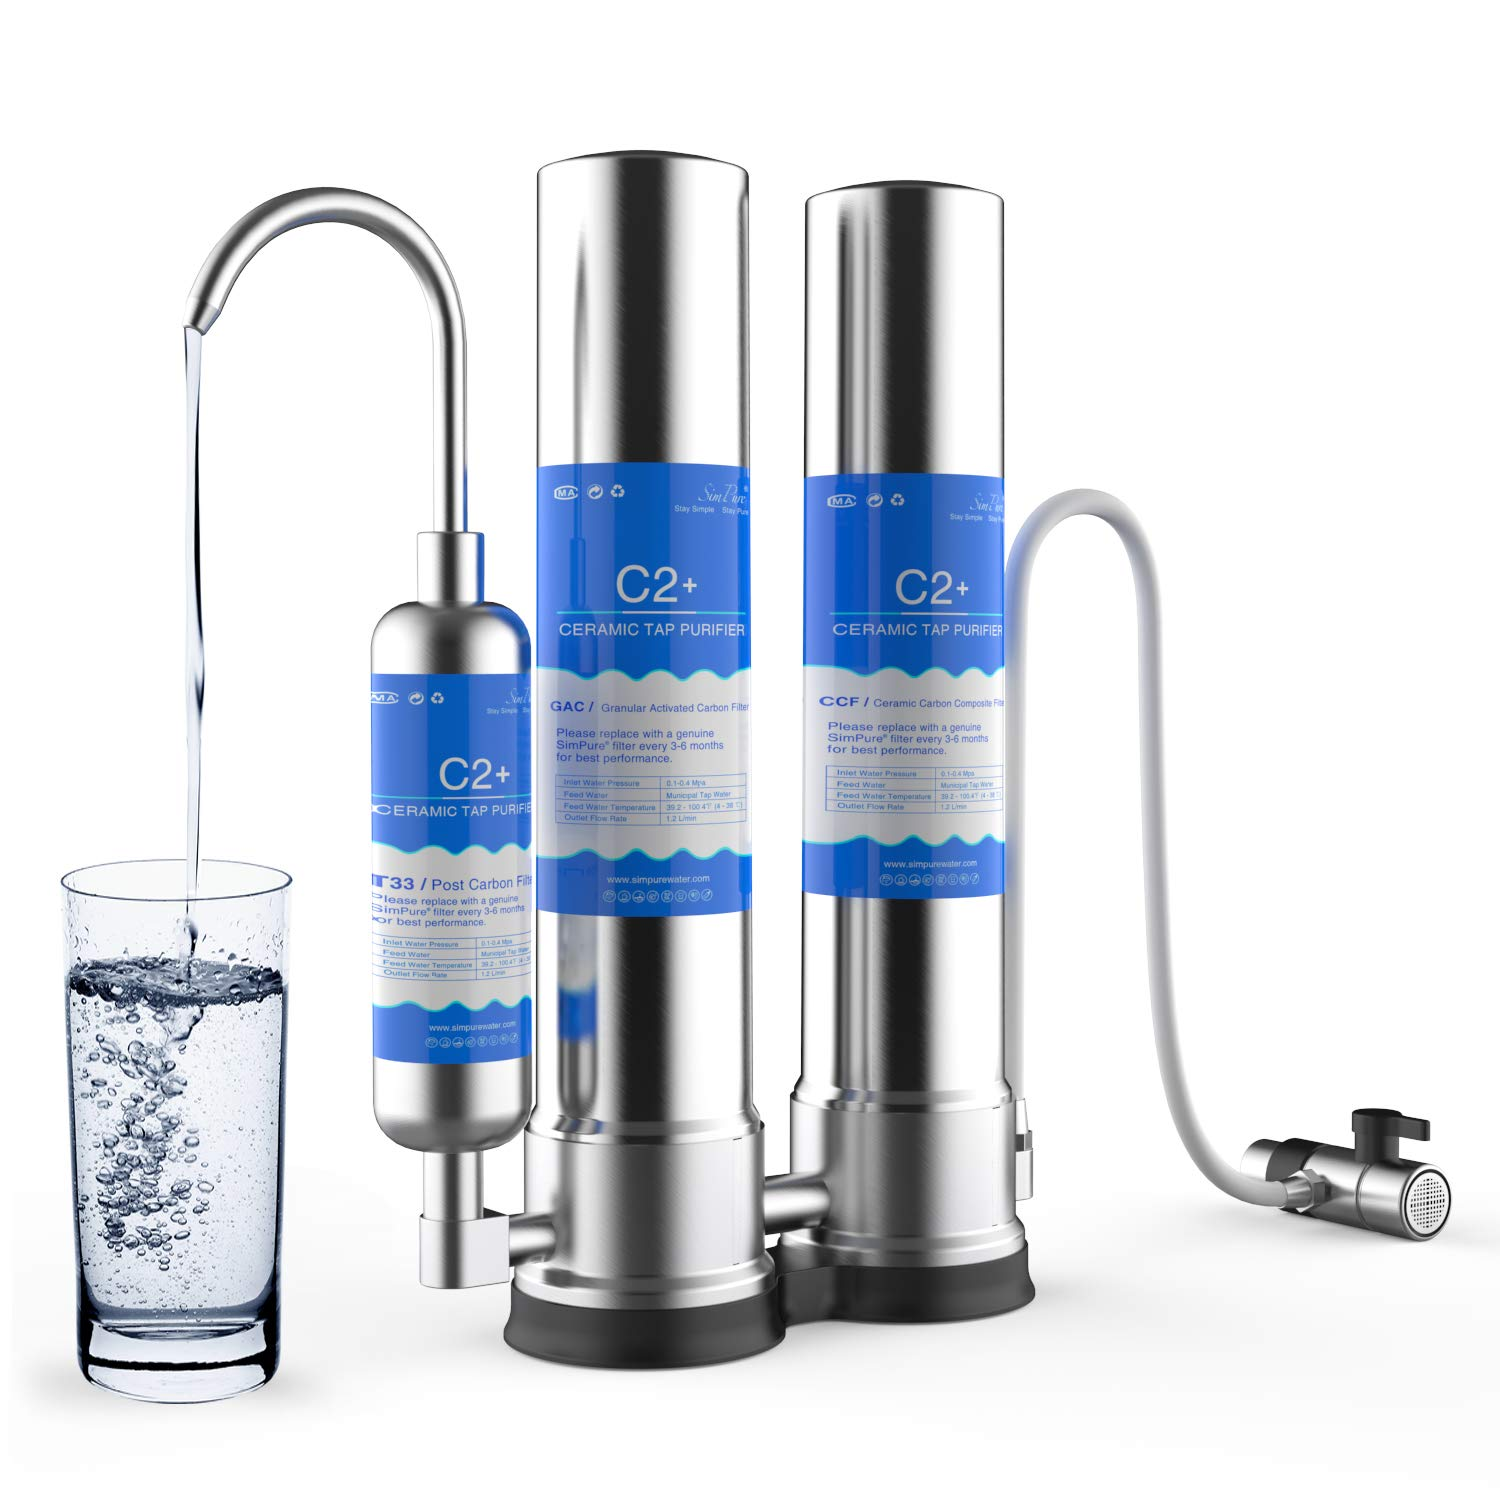 SimPure Dual-Stage Countertop Water Filter, Drinking Water Filtration System, Built-in Carbon Block Filter and Post Carbon Filter, Perfect for Healthier Fresher Purified Water